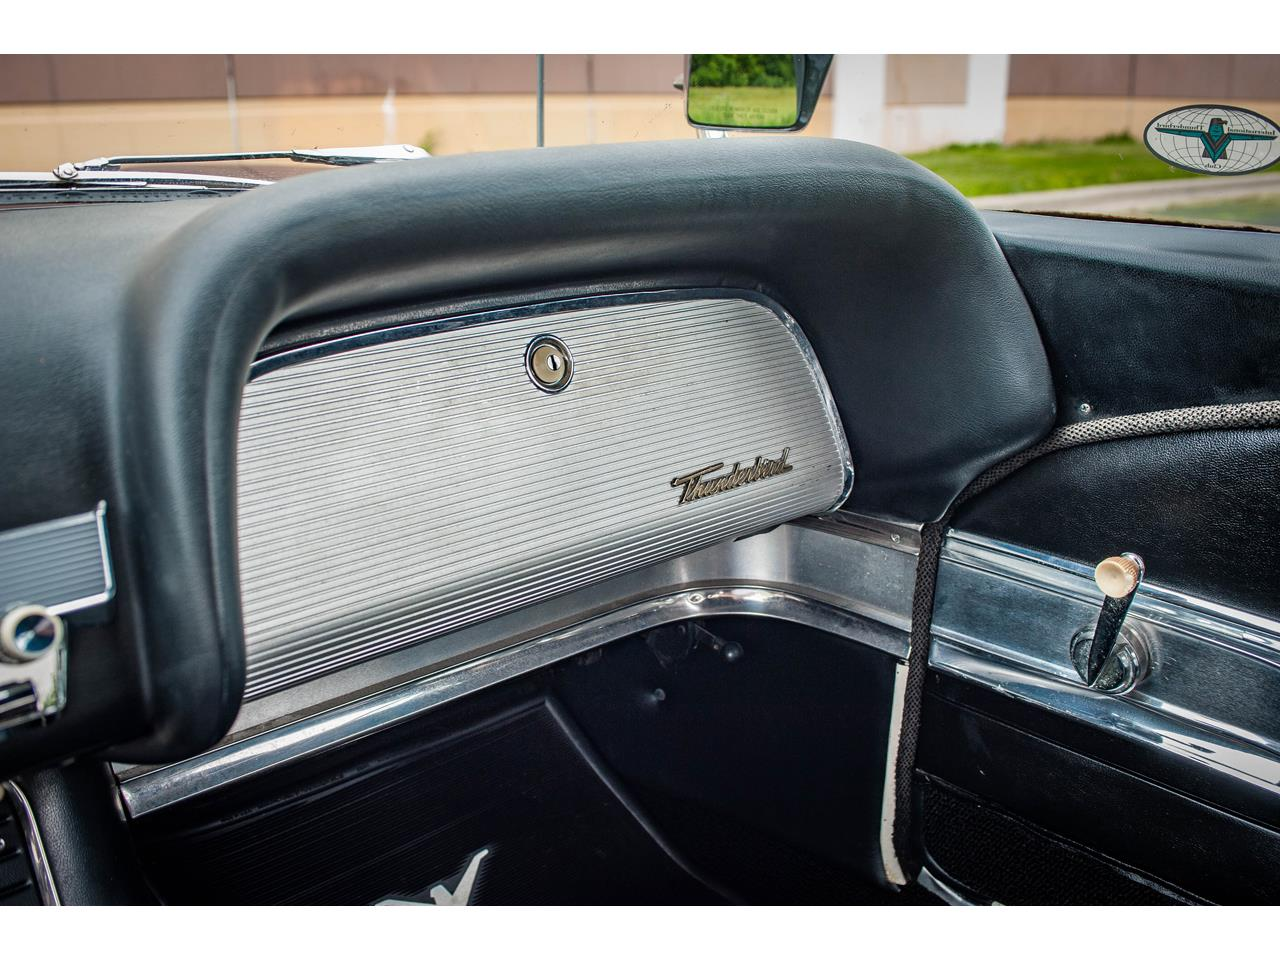 Large Picture of 1960 Ford Thunderbird located in O'Fallon Illinois - $40,500.00 Offered by Gateway Classic Cars - St. Louis - QB9W